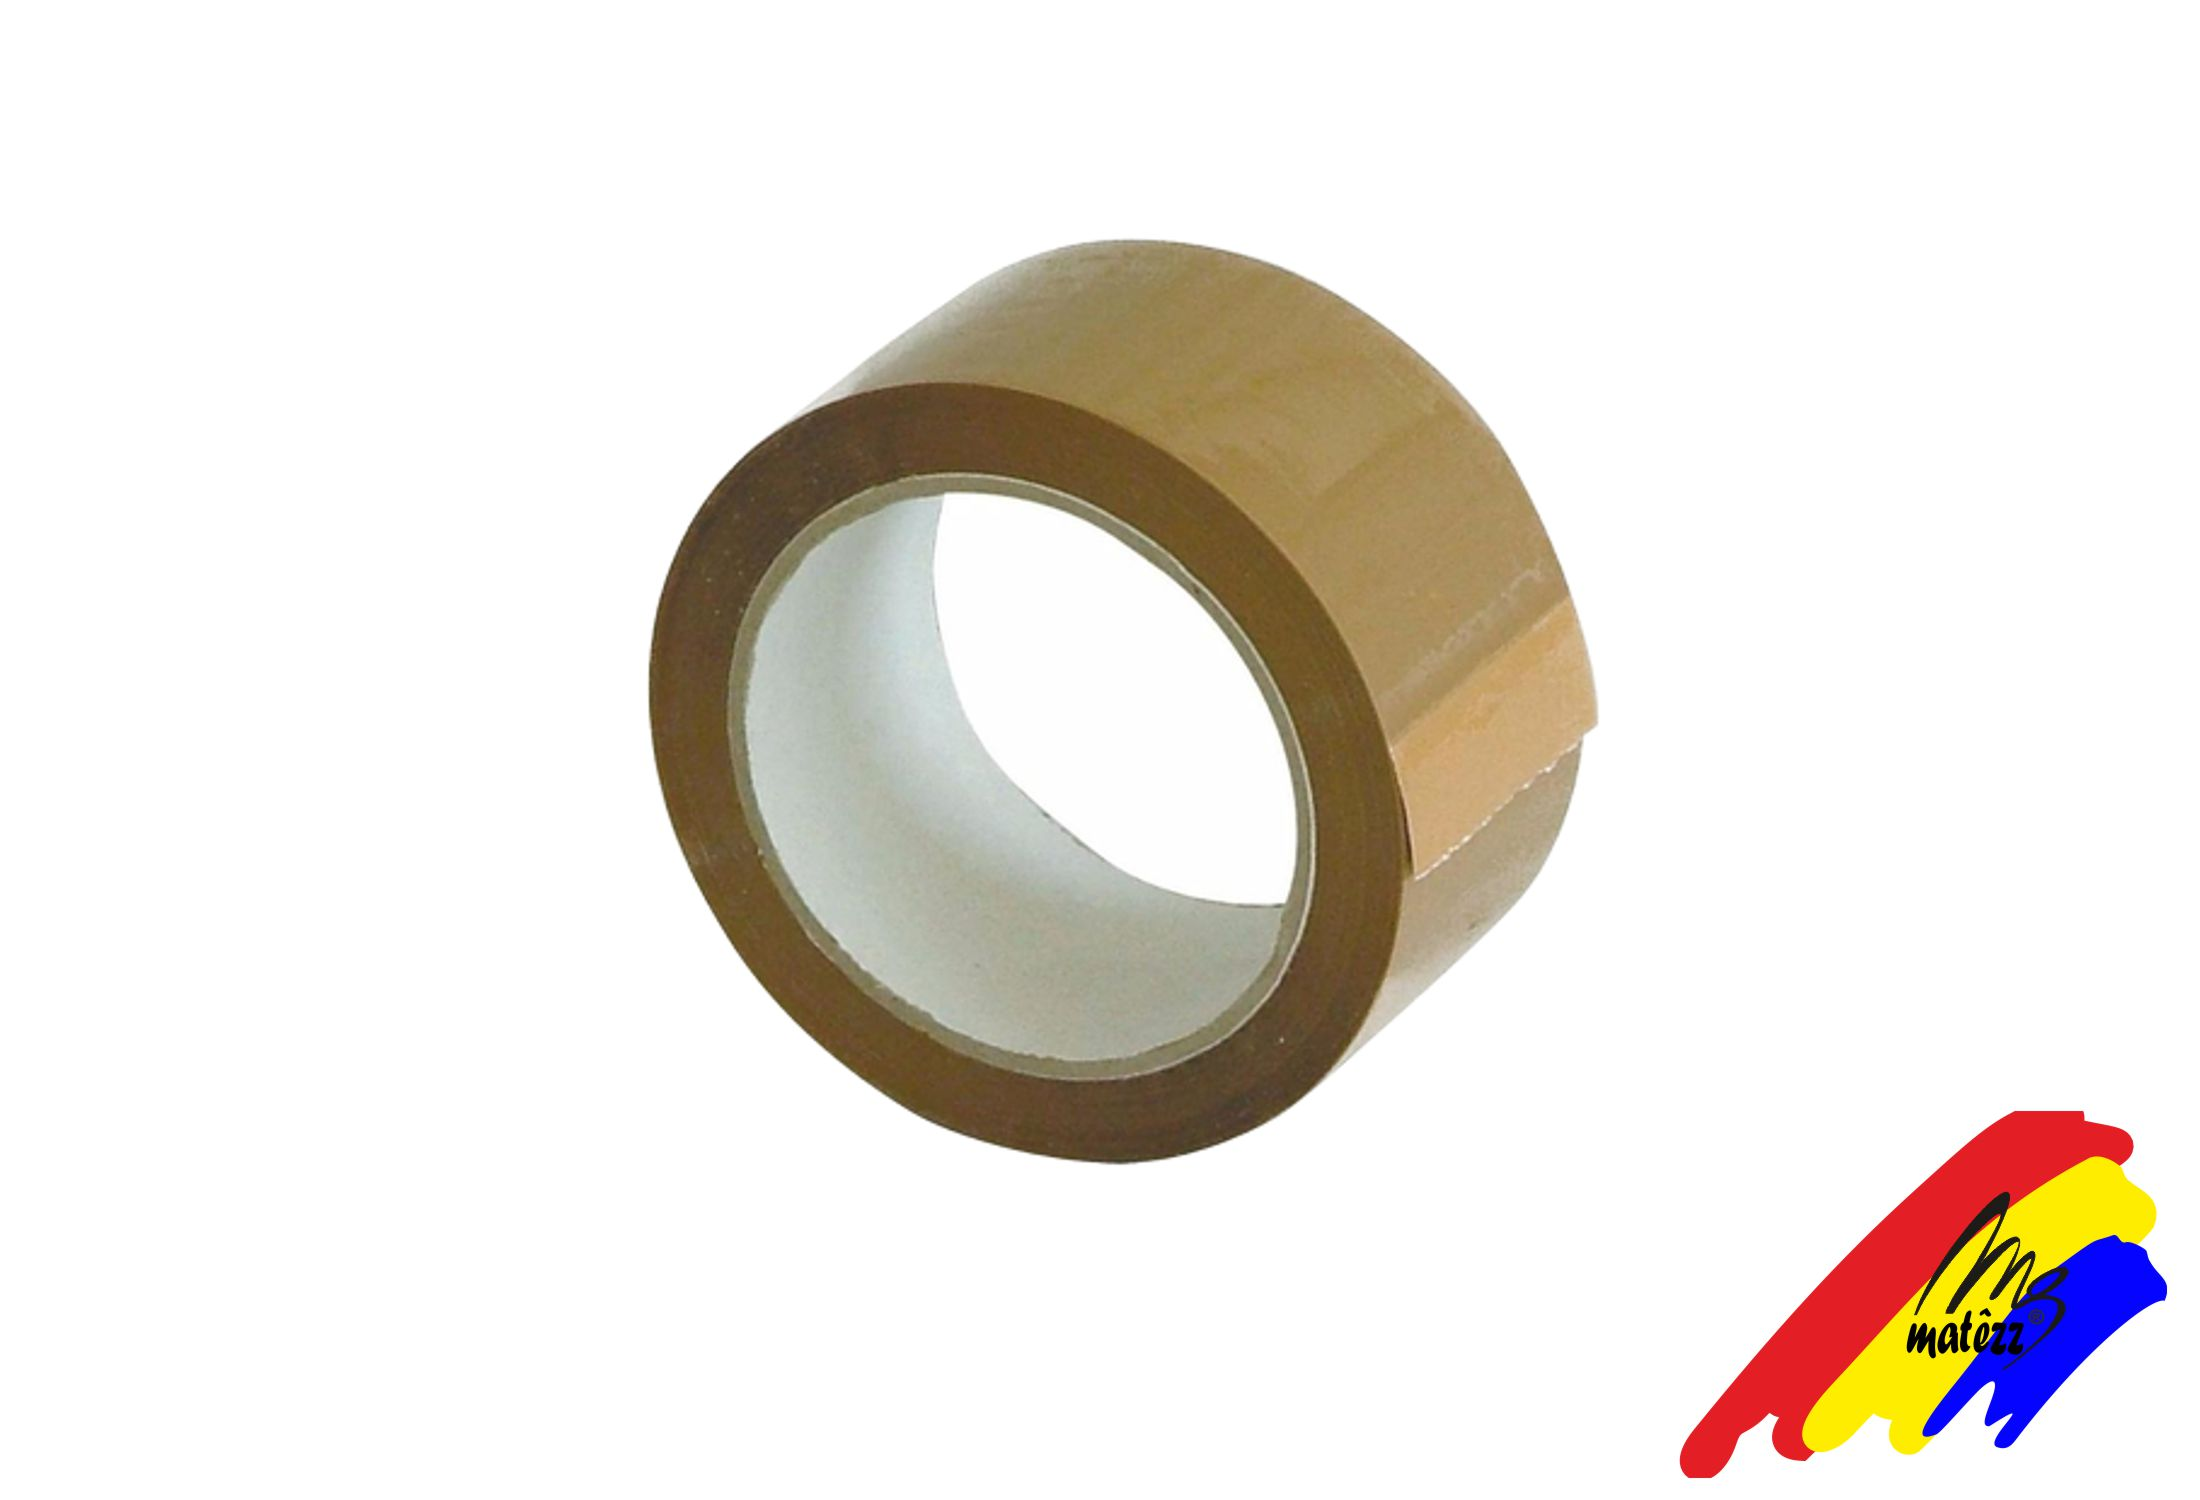 Cinta embalaje 48mm x 40mt Marron